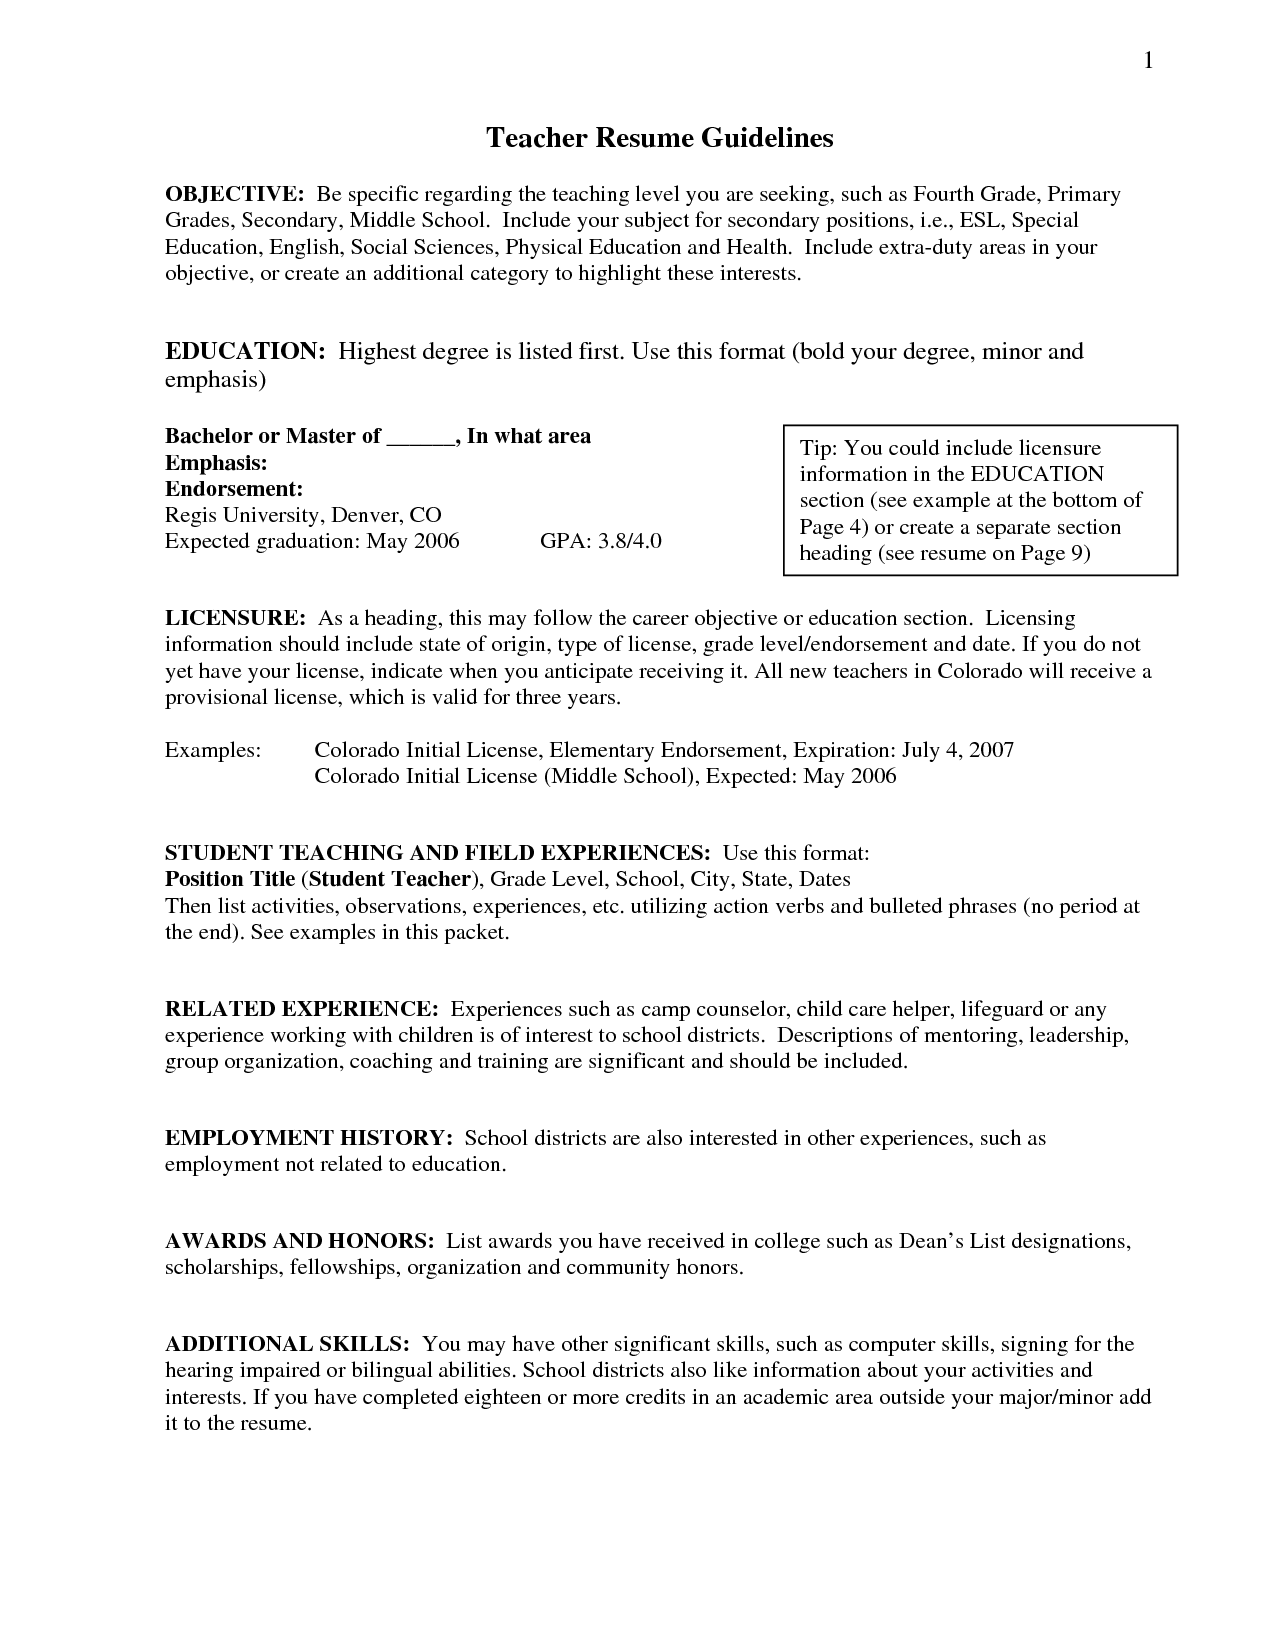 Resume Objective Statement For Teacher   Http://www.resumecareer.info/  Objective Section Of Resume